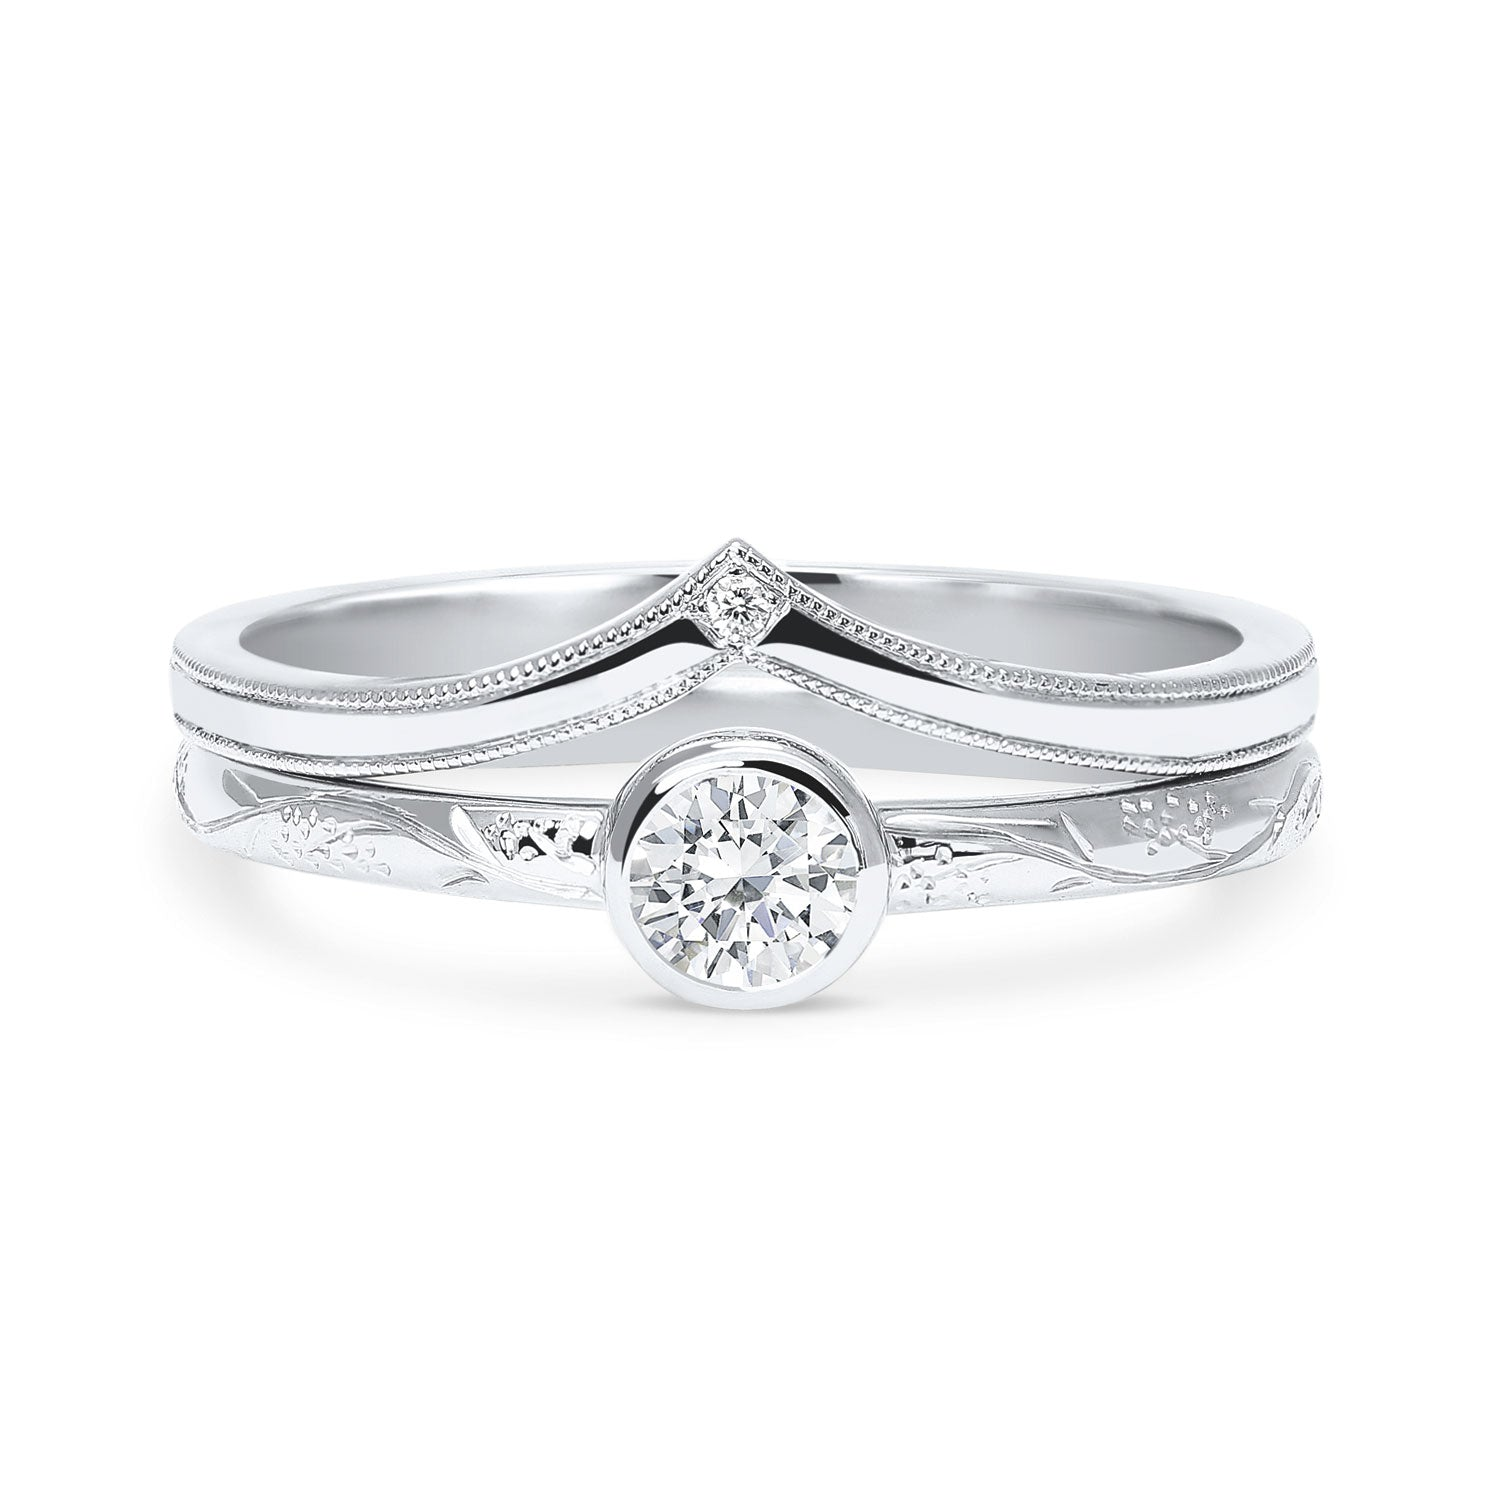 Bespoke engagement ring and wedding ring set, 100% recycled platinum and conflict-free diamonds